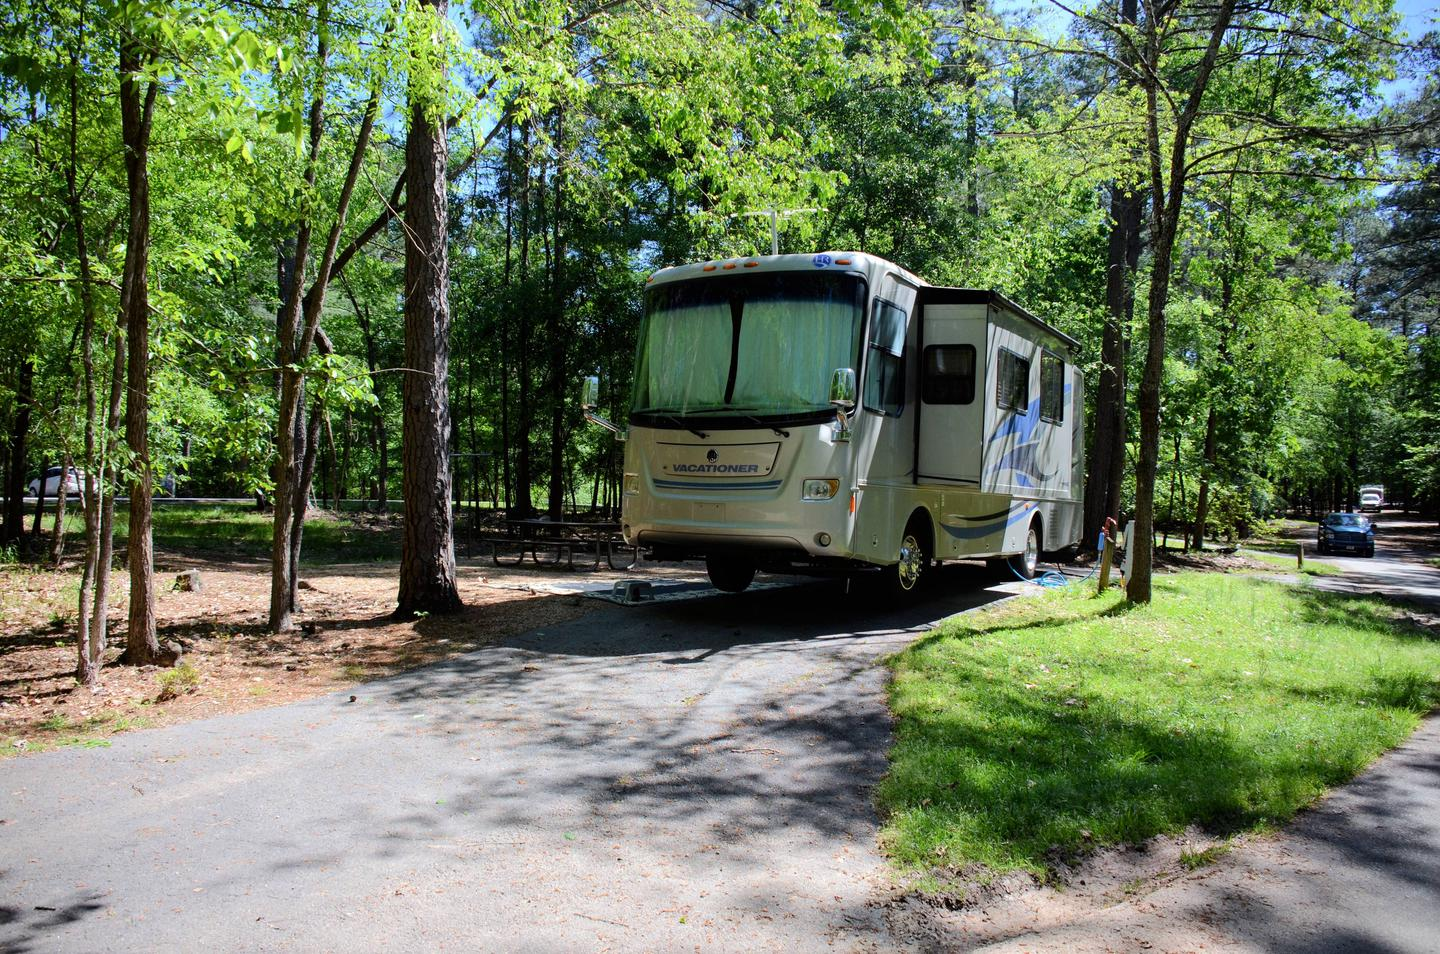 Pull-thru exit, driveway slope, utilities-side clearance.McKinney Campground, campsite 74.